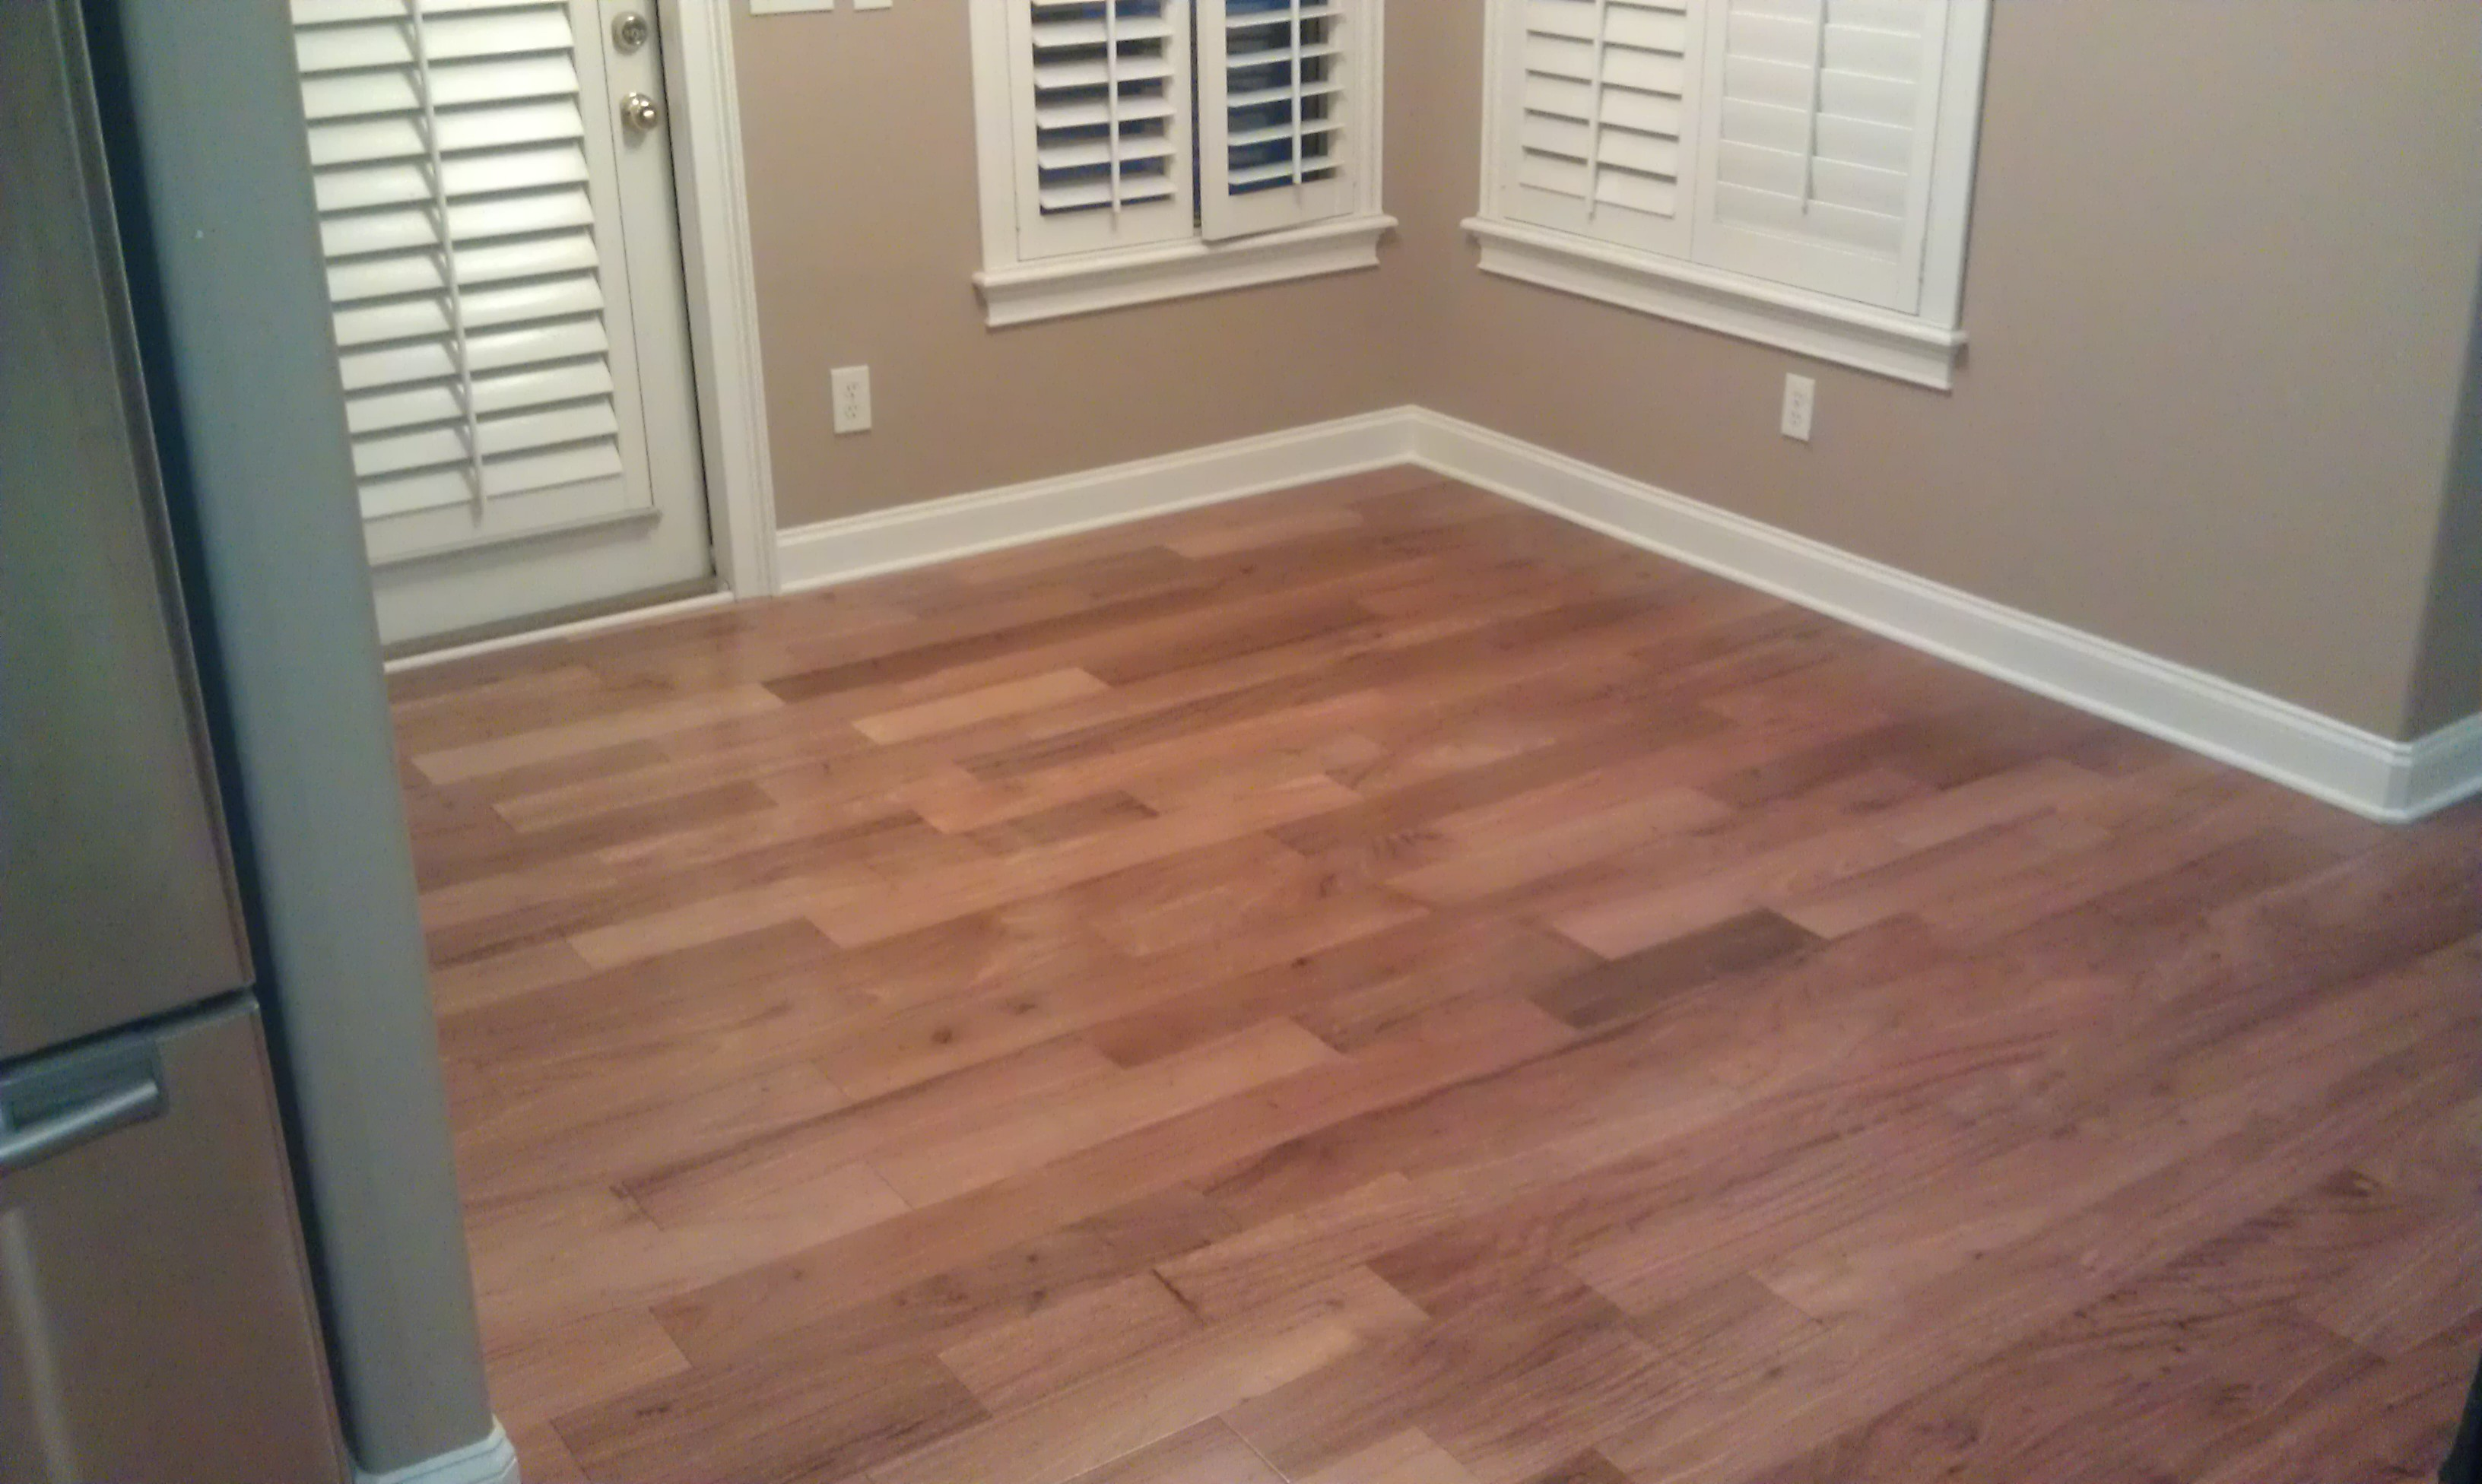 Laminate flooring in jacksonville for home renovations for Home and floor